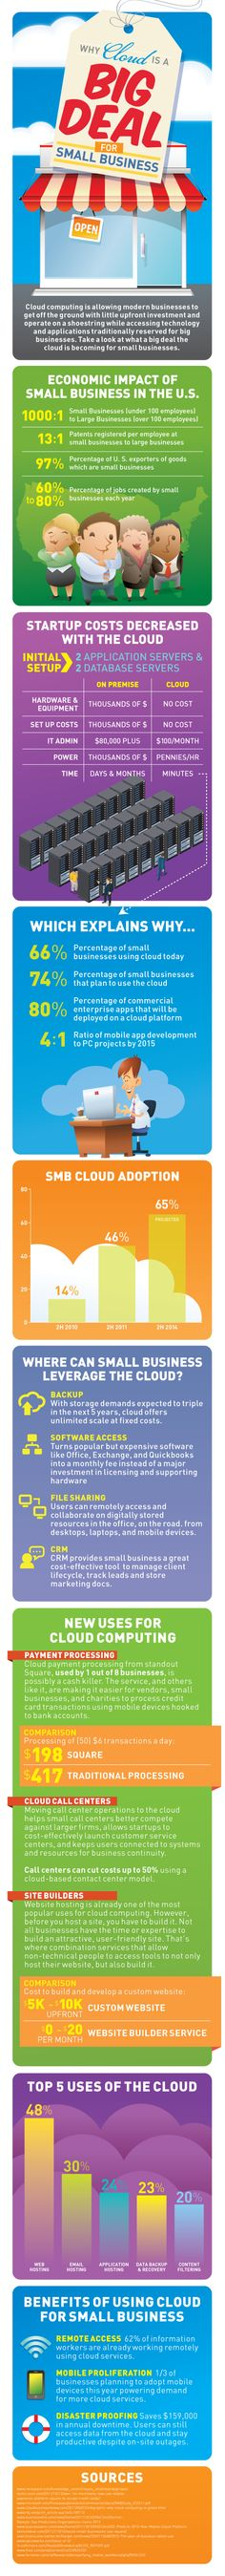 #SmallBusiness and #Cloud [#Infographic]